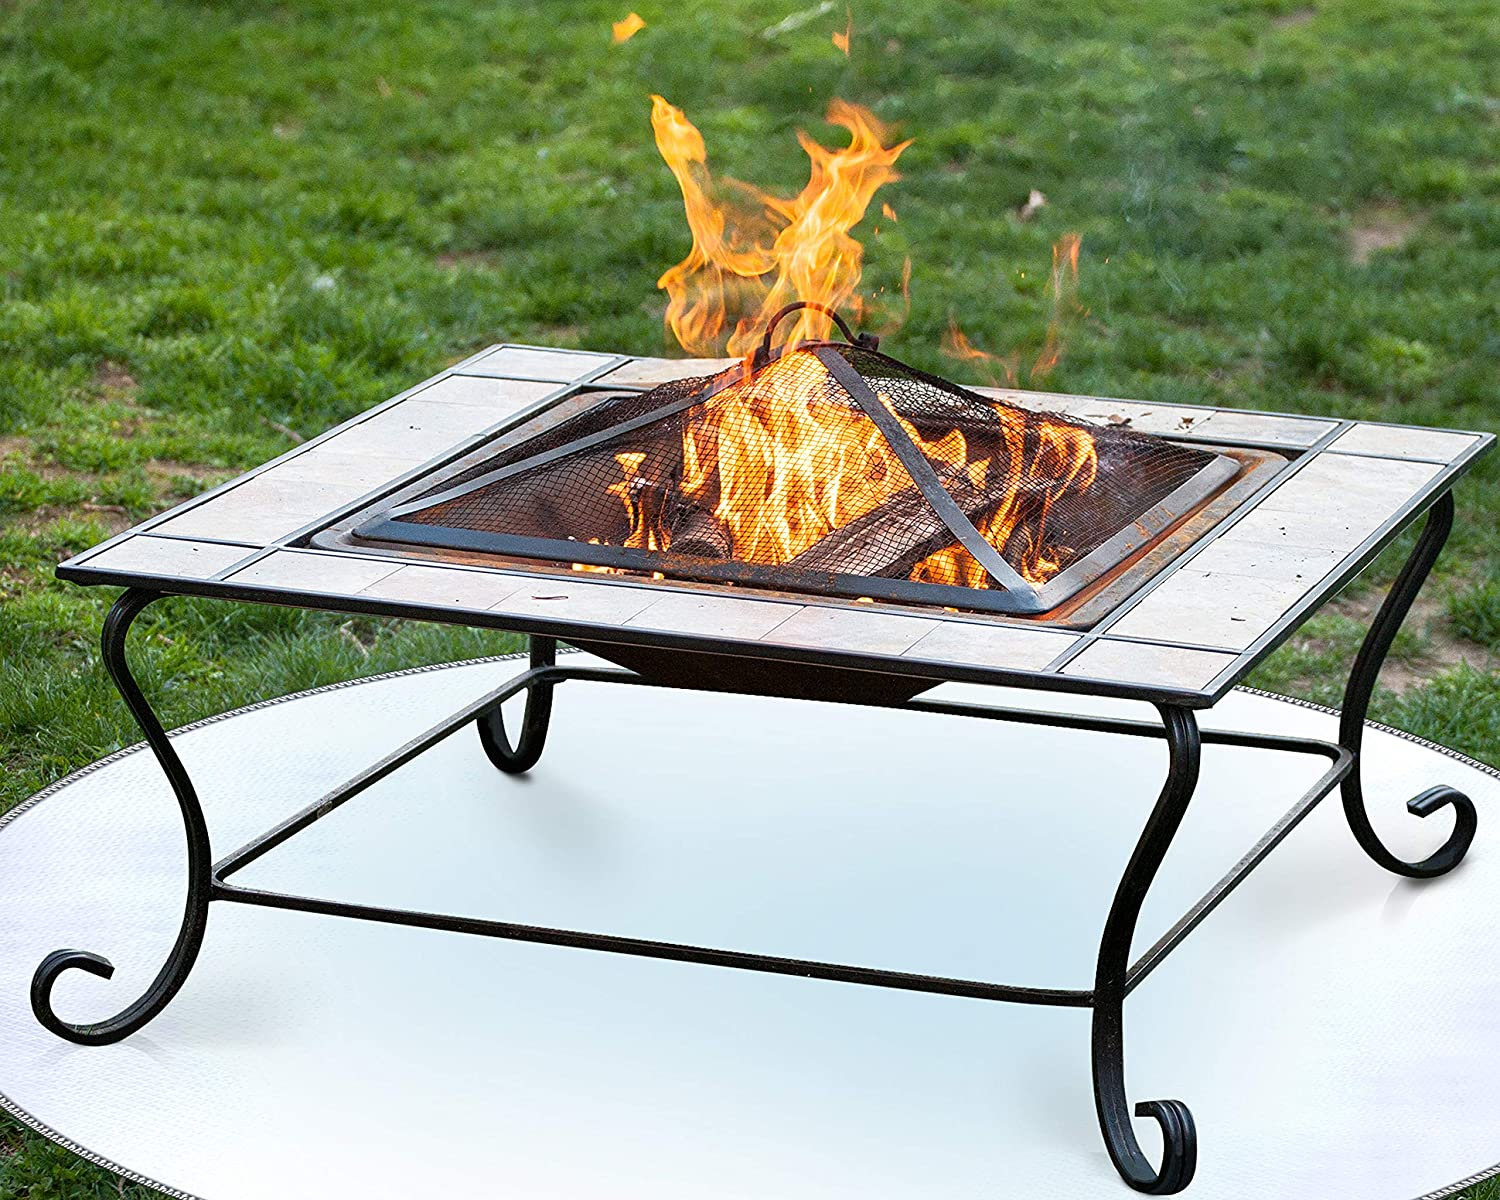 Grills Outdoor Cooking Outdoor Patio Bbq Smoker 24 36 Under Grill Mat Protector For Wood Burning Fire Pit And Grass From High Radiant Heat Charcoal Grill Firepad Deck Protector Gas Fire Pit